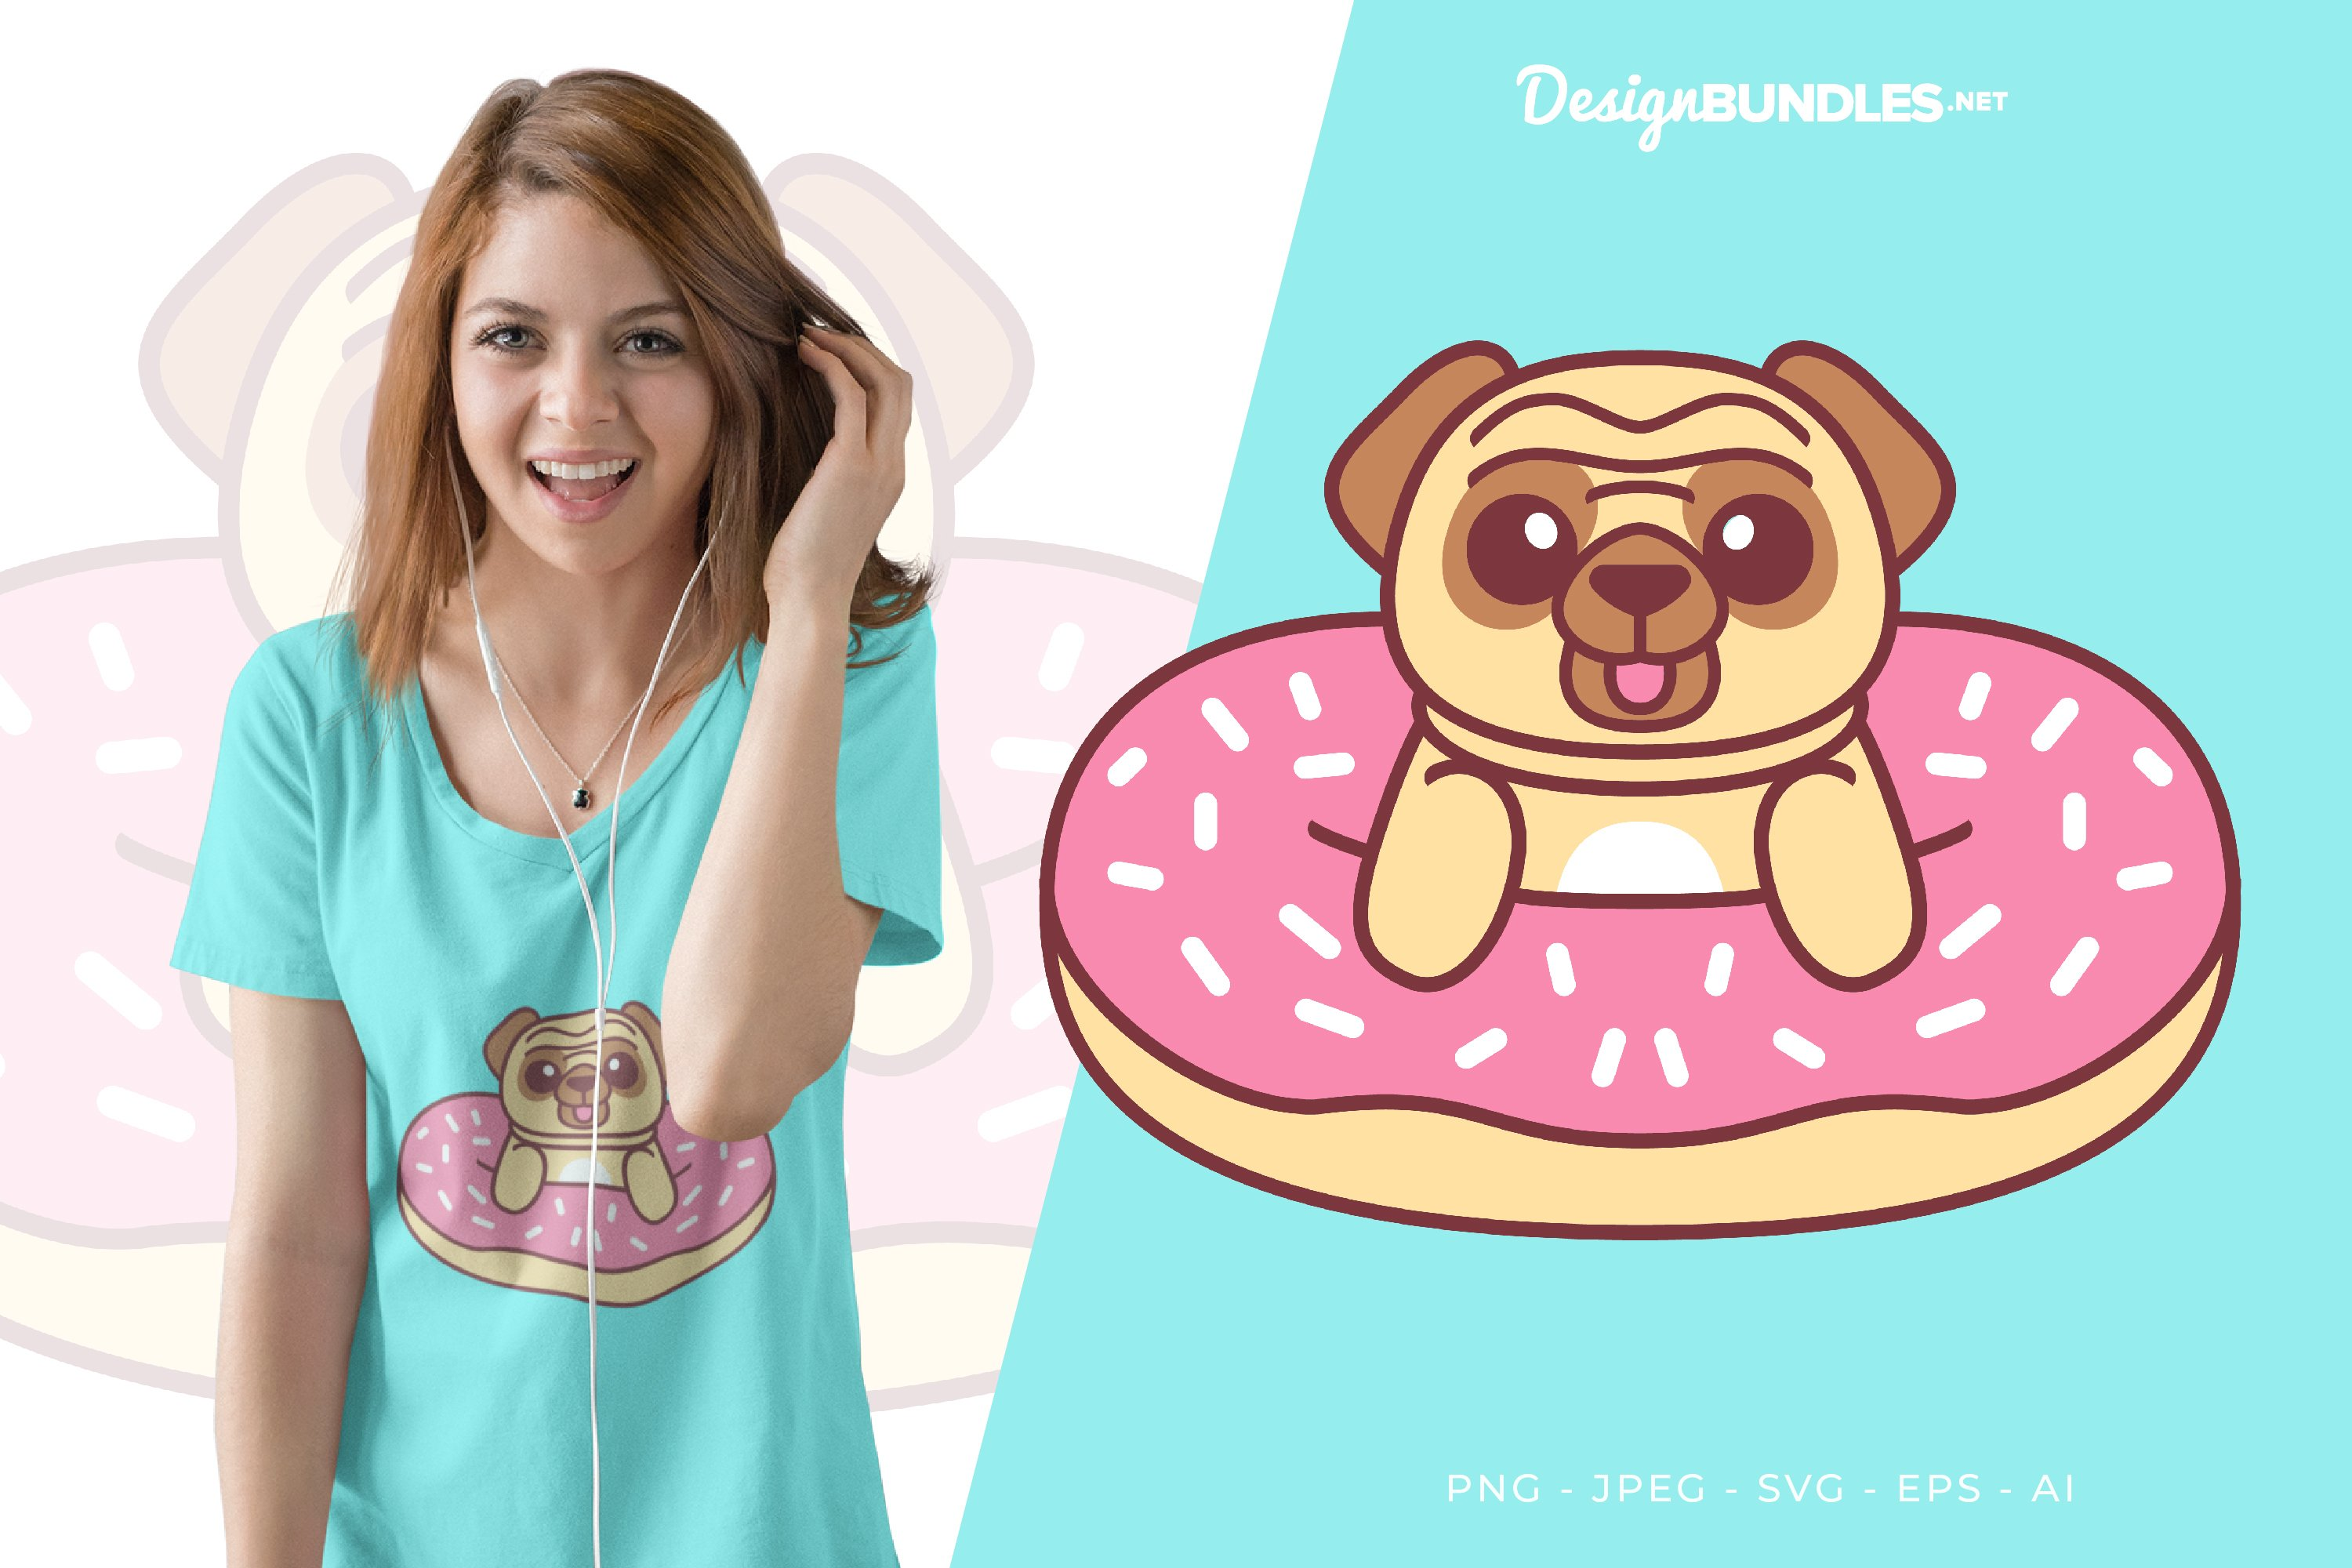 Pug and Donut Vector Illustration For T-Shirt Design example image 1